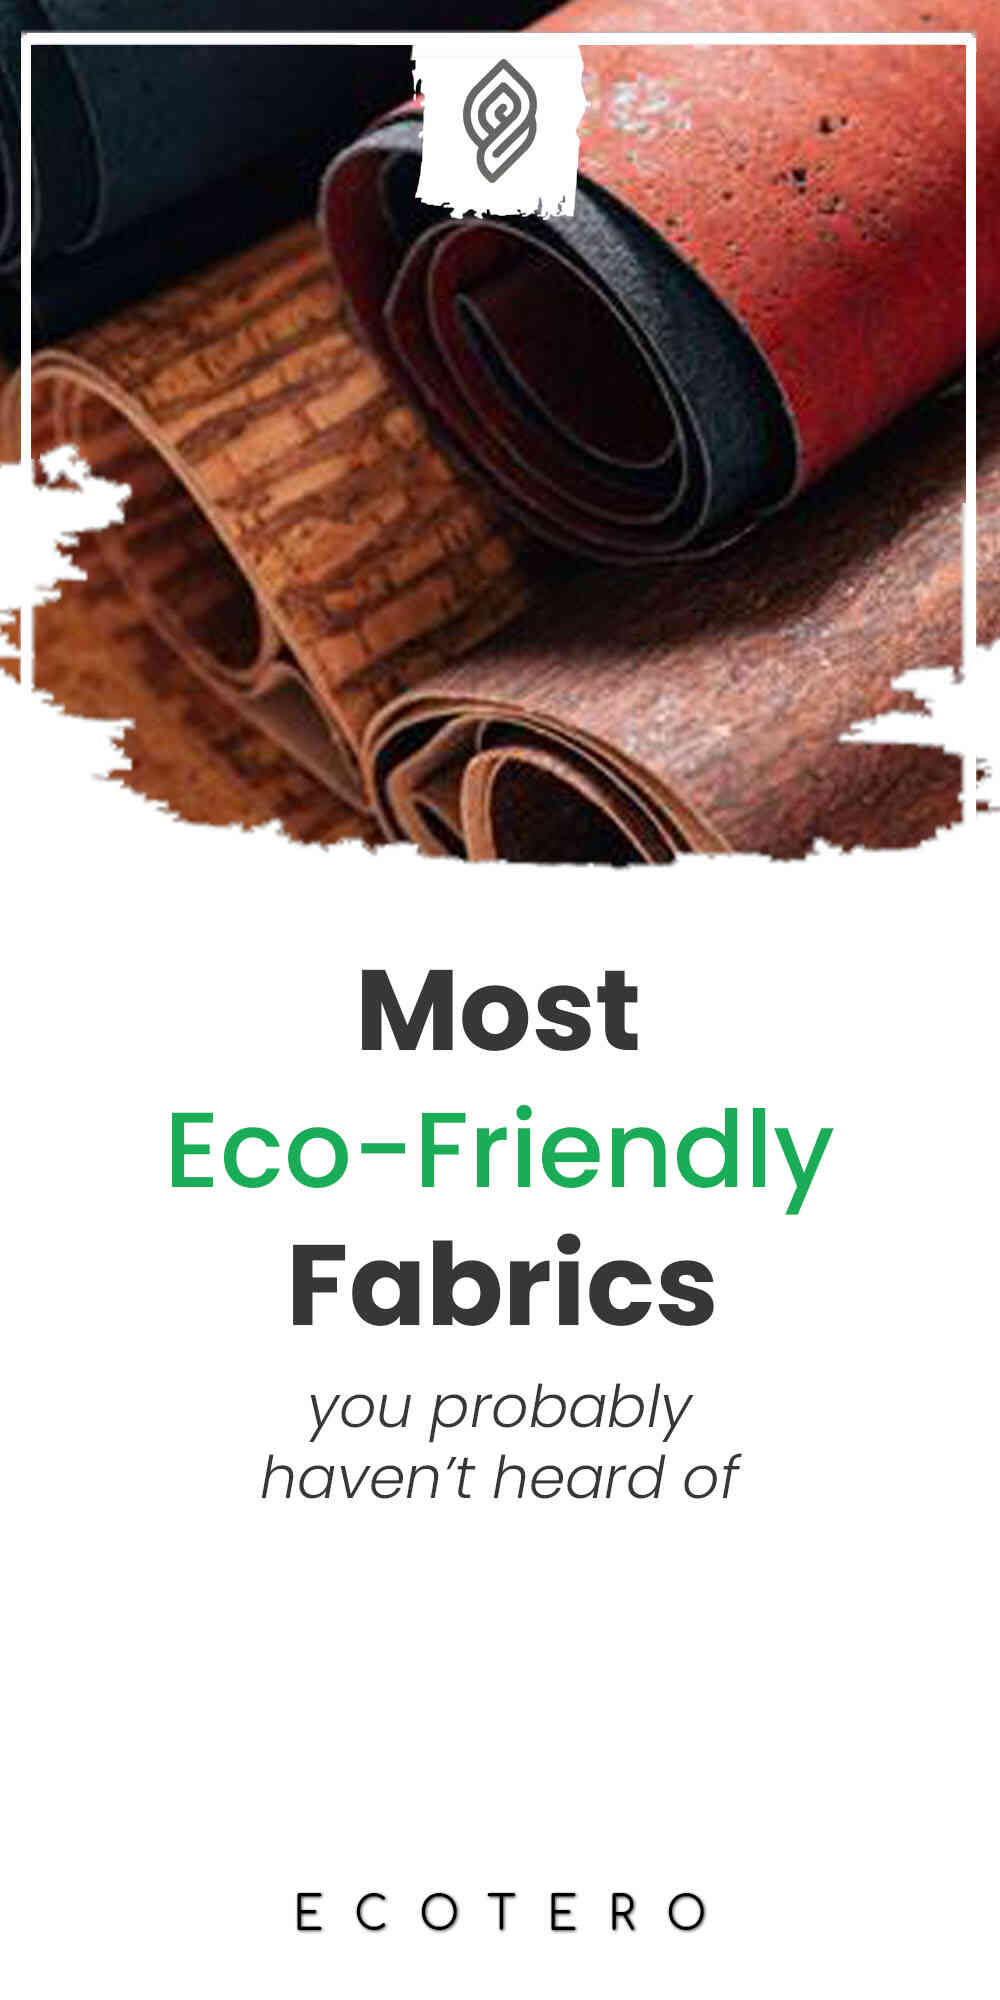 What-Are-The-Most-Eco-Friendly-Fabrics